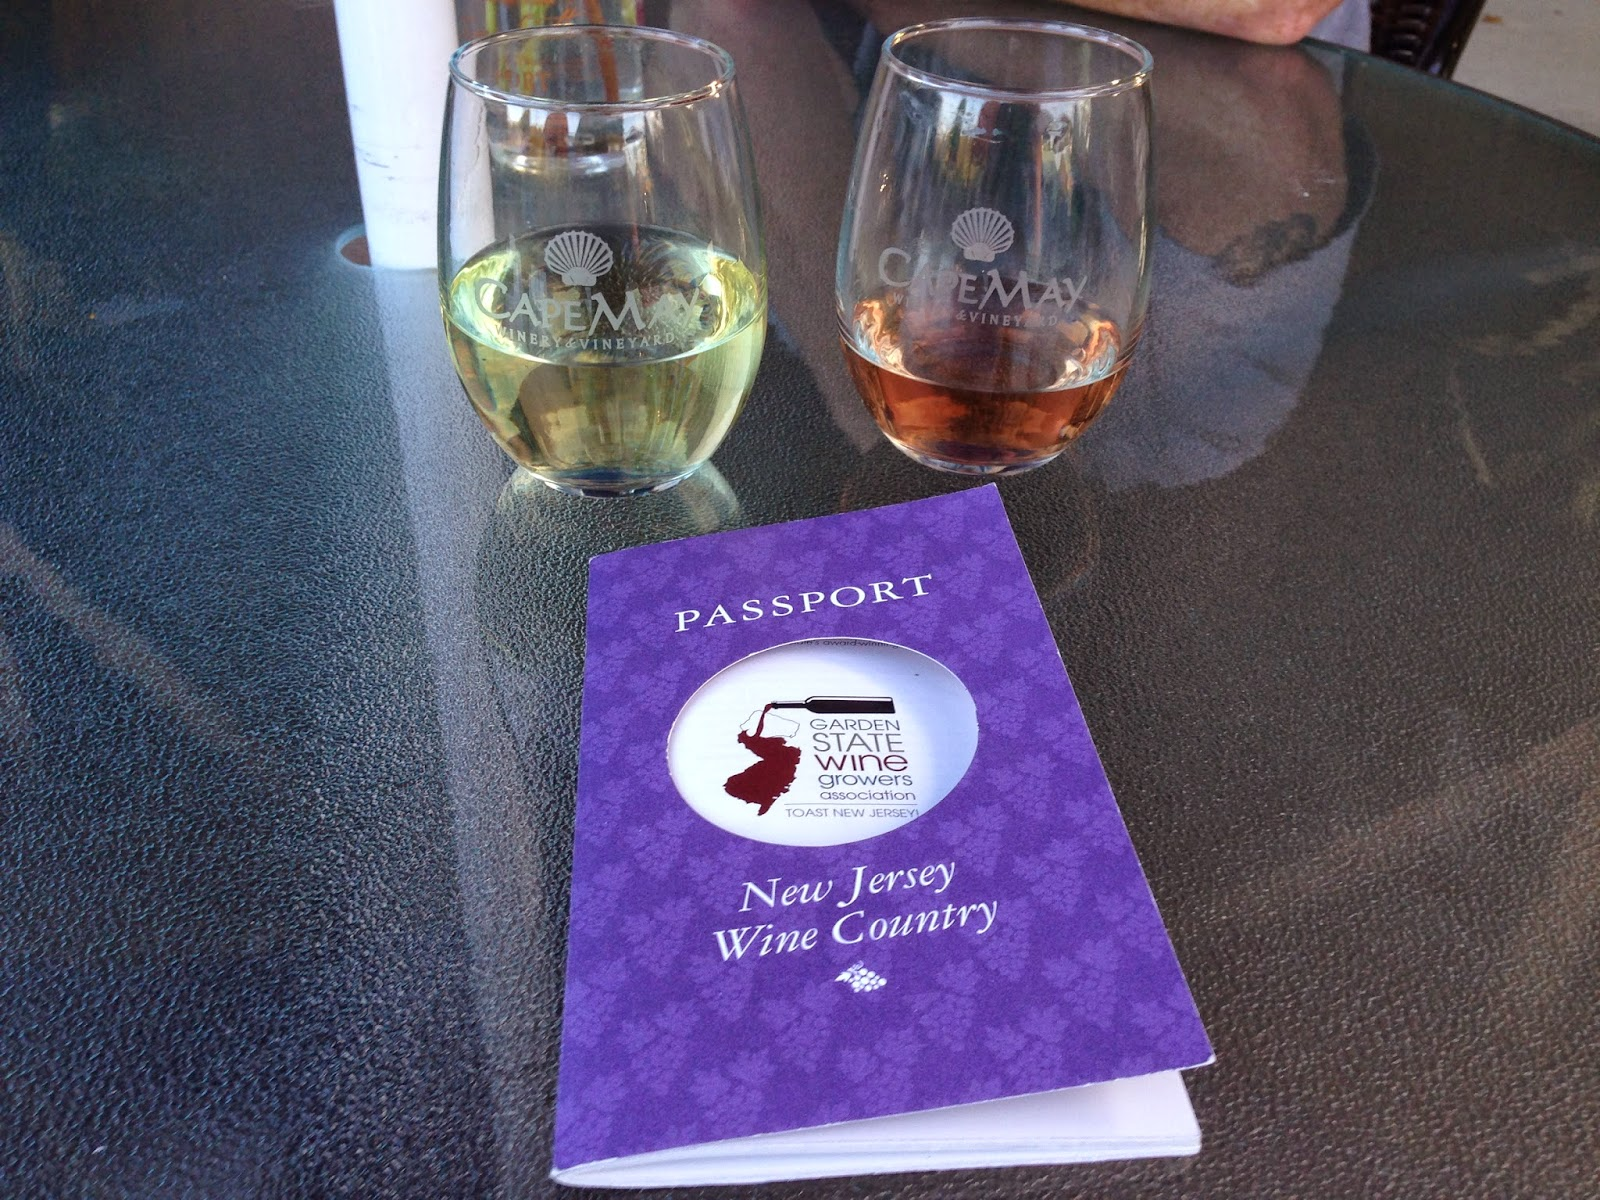 NJ wine passport program - Cape May wine trail